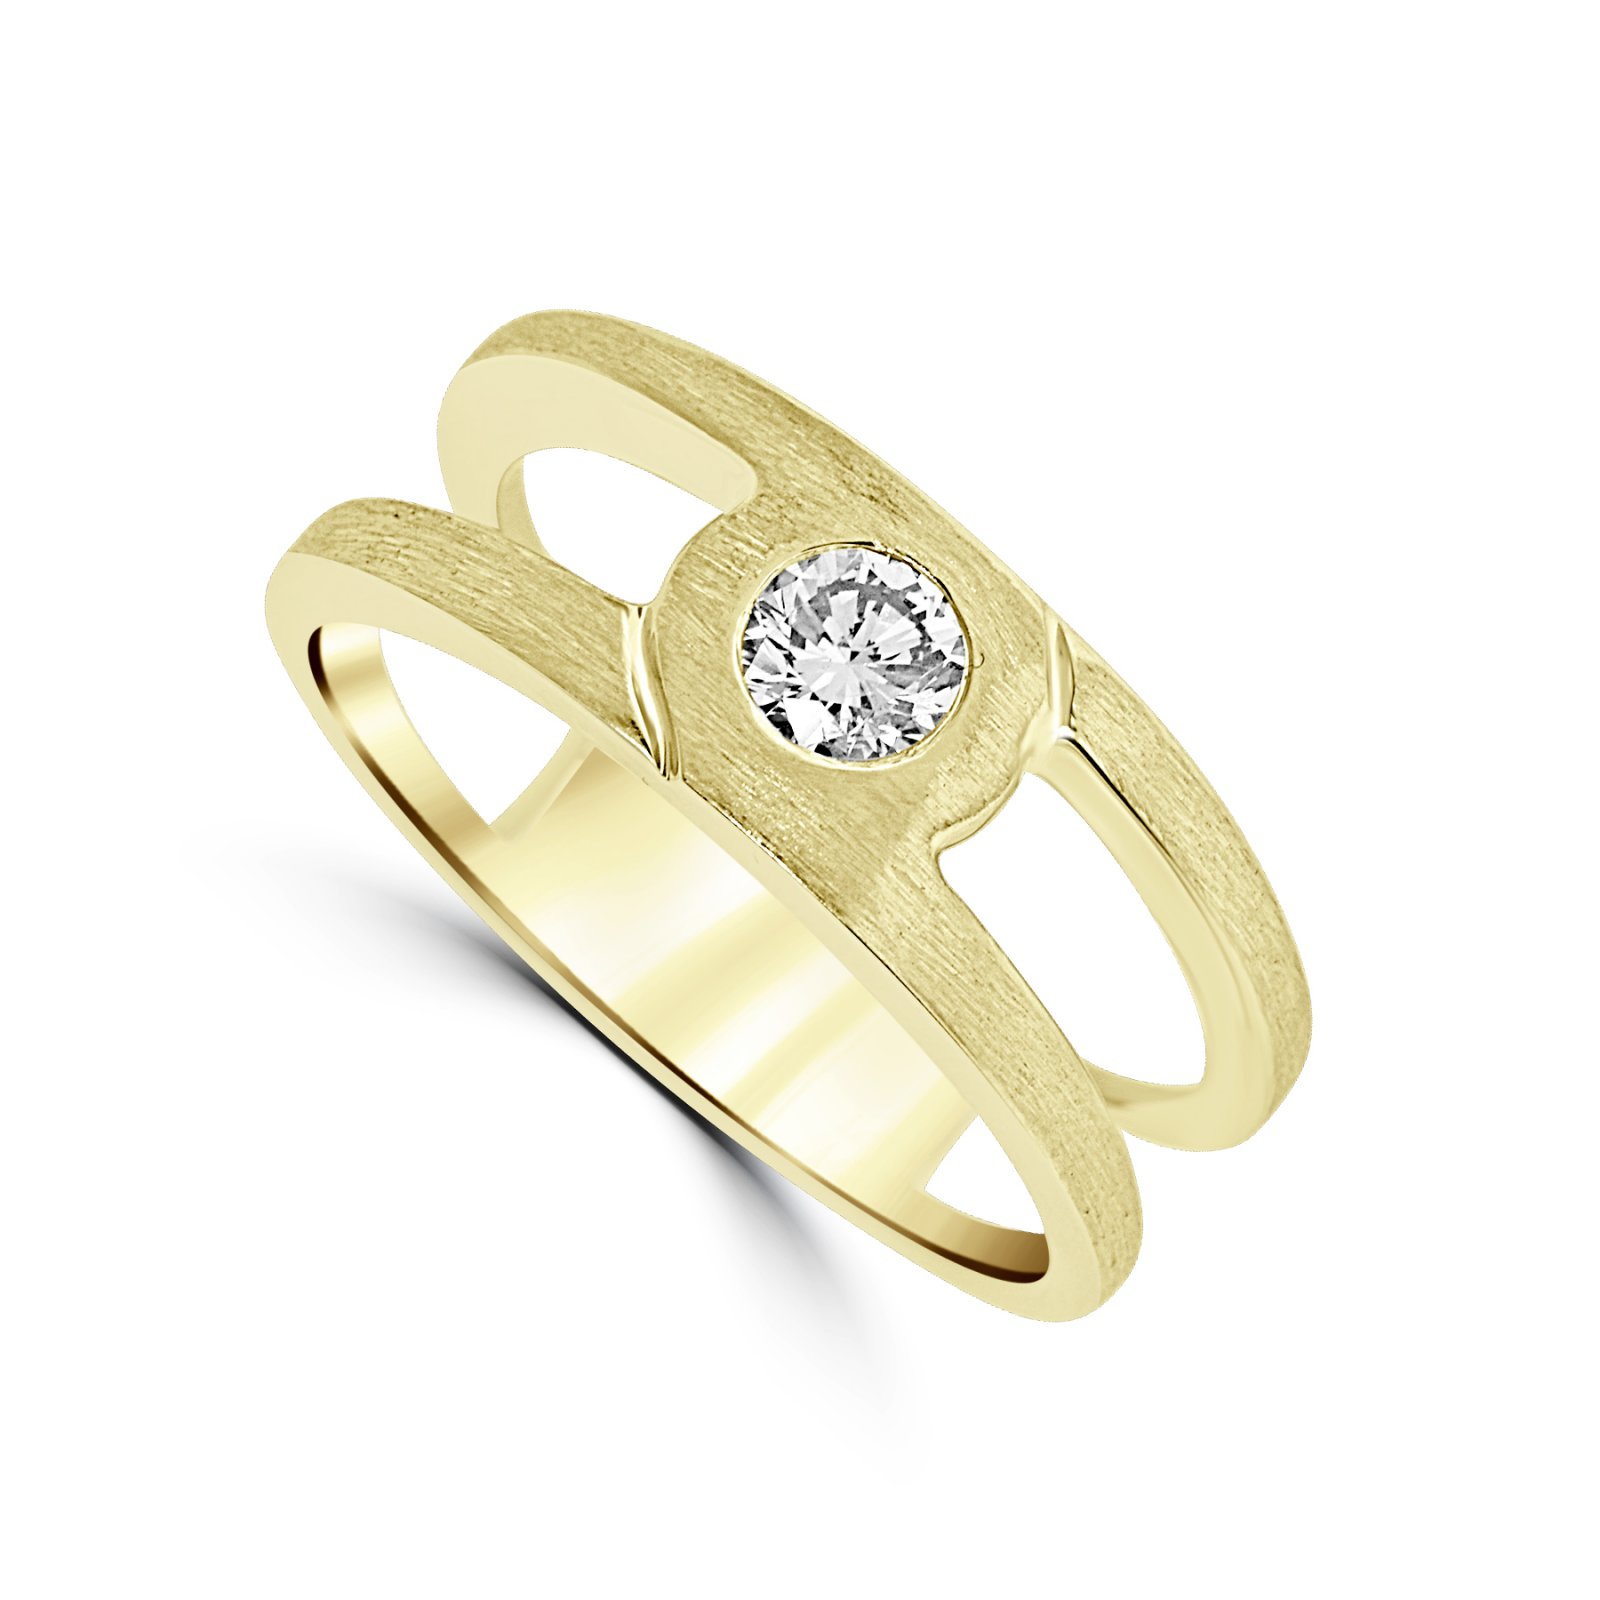 Men's 0.40 Total Carat Weight  Diamond Ring Set in 14 Karat Yellow Gold